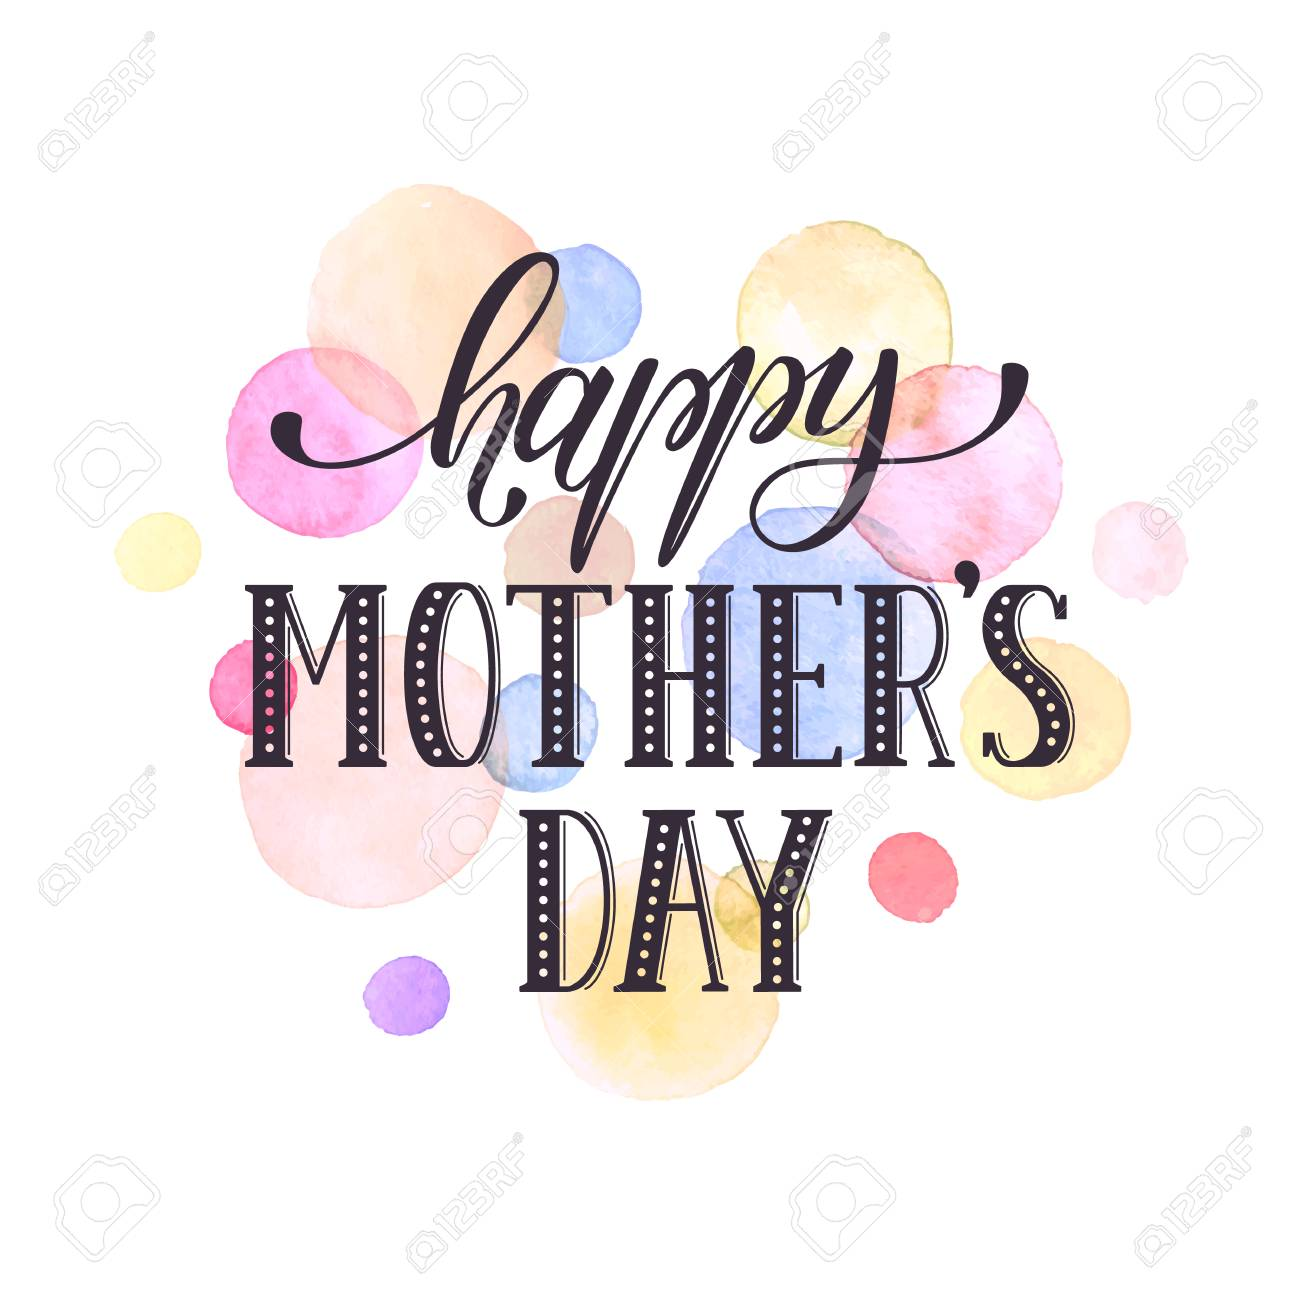 Mothers day greeting card template happy mothers day wording mothers day greeting card template happy mothers day wording with watercolor spots on background kristyandbryce Choice Image